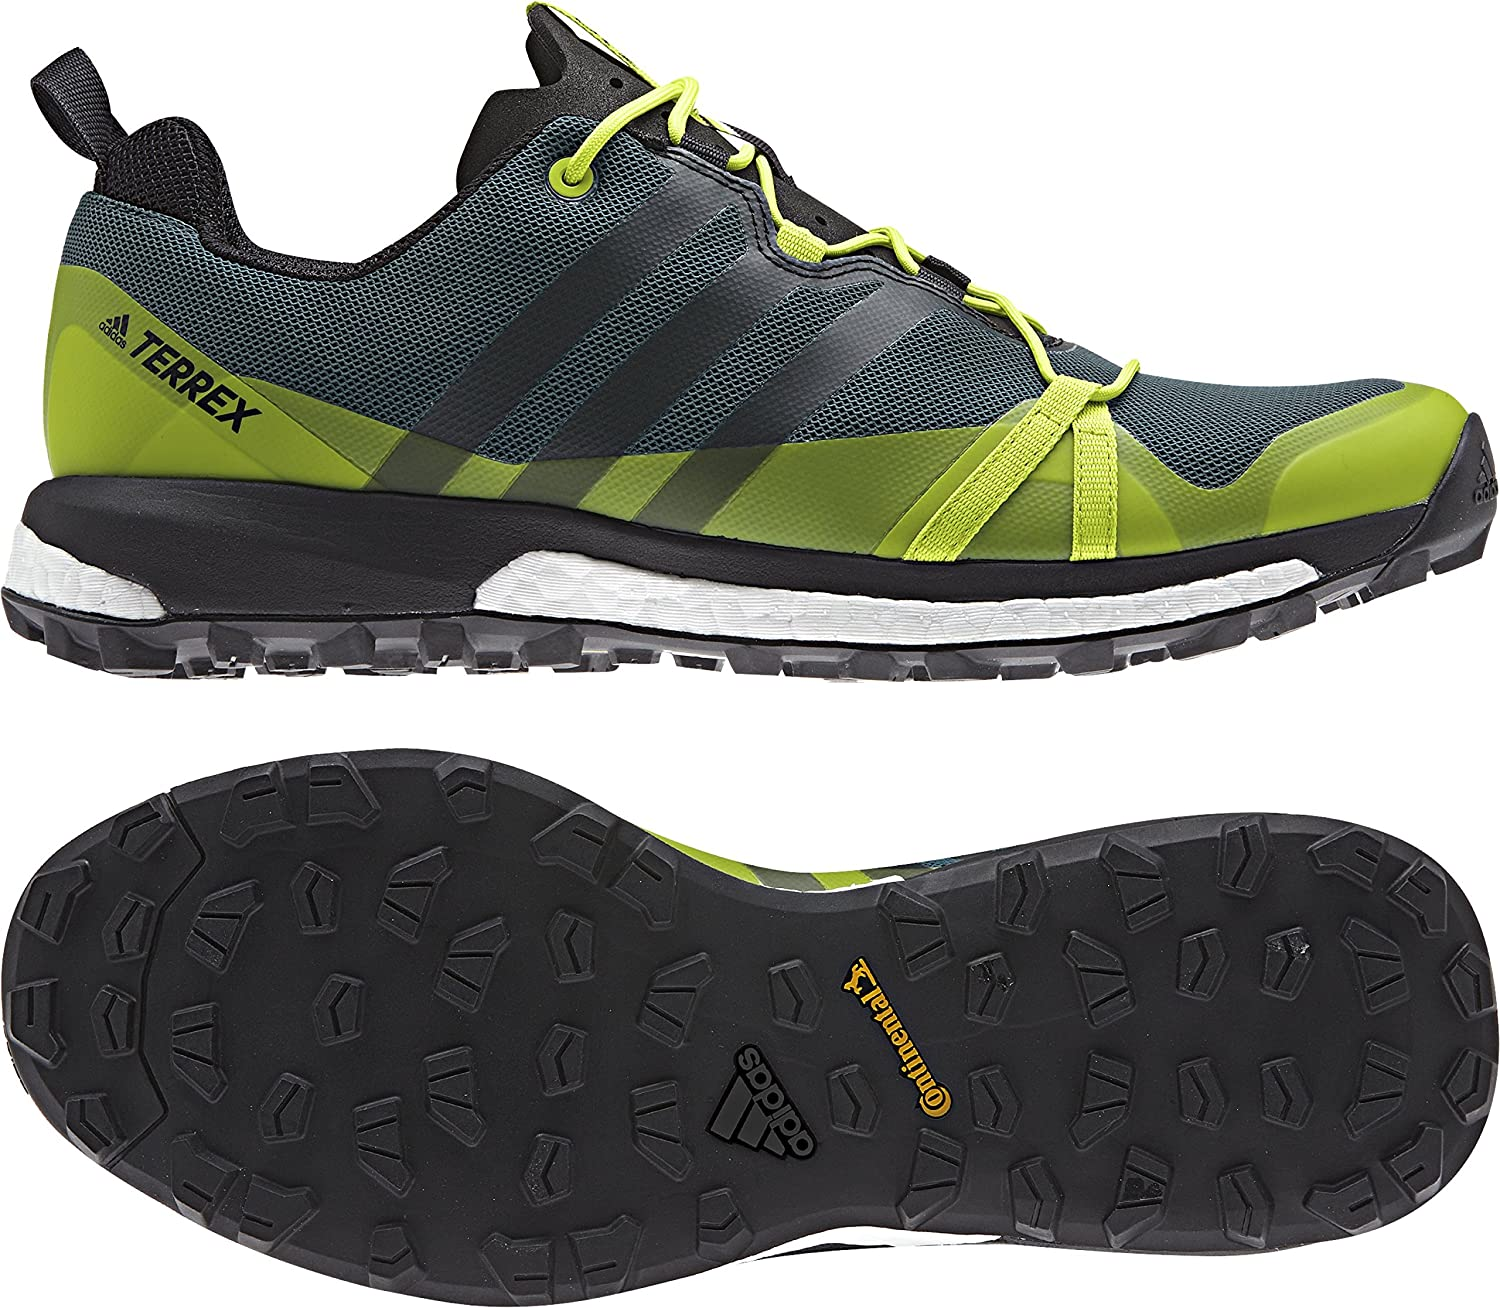 Image of adidas Men's Terrex Agravic Mystery Green/Black/Semi Solar Yellow Athletic Shoe Trail Running